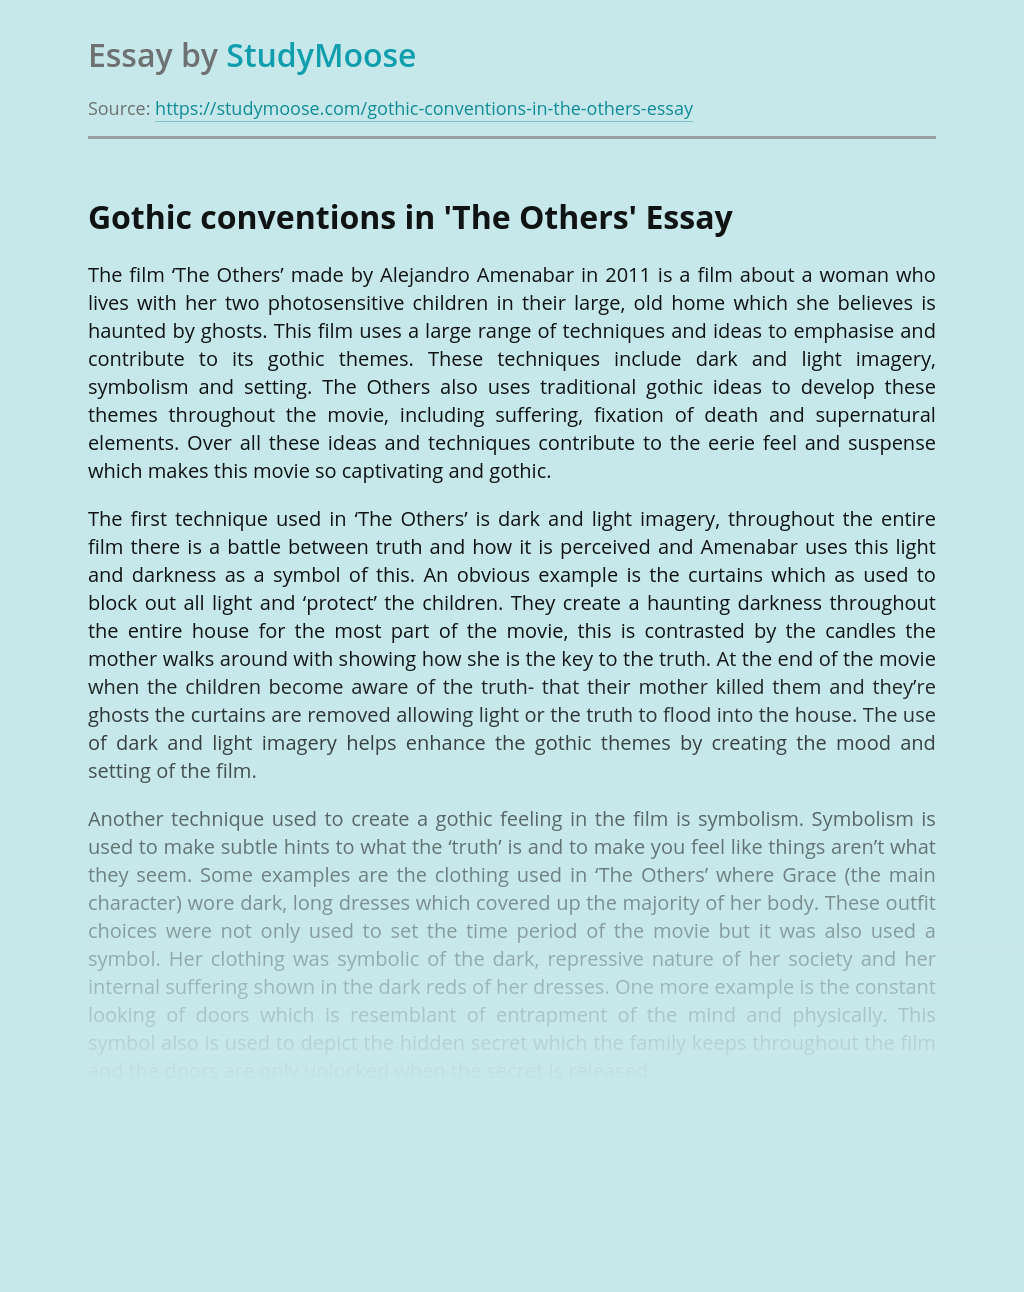 Gothic conventions in 'The Others'